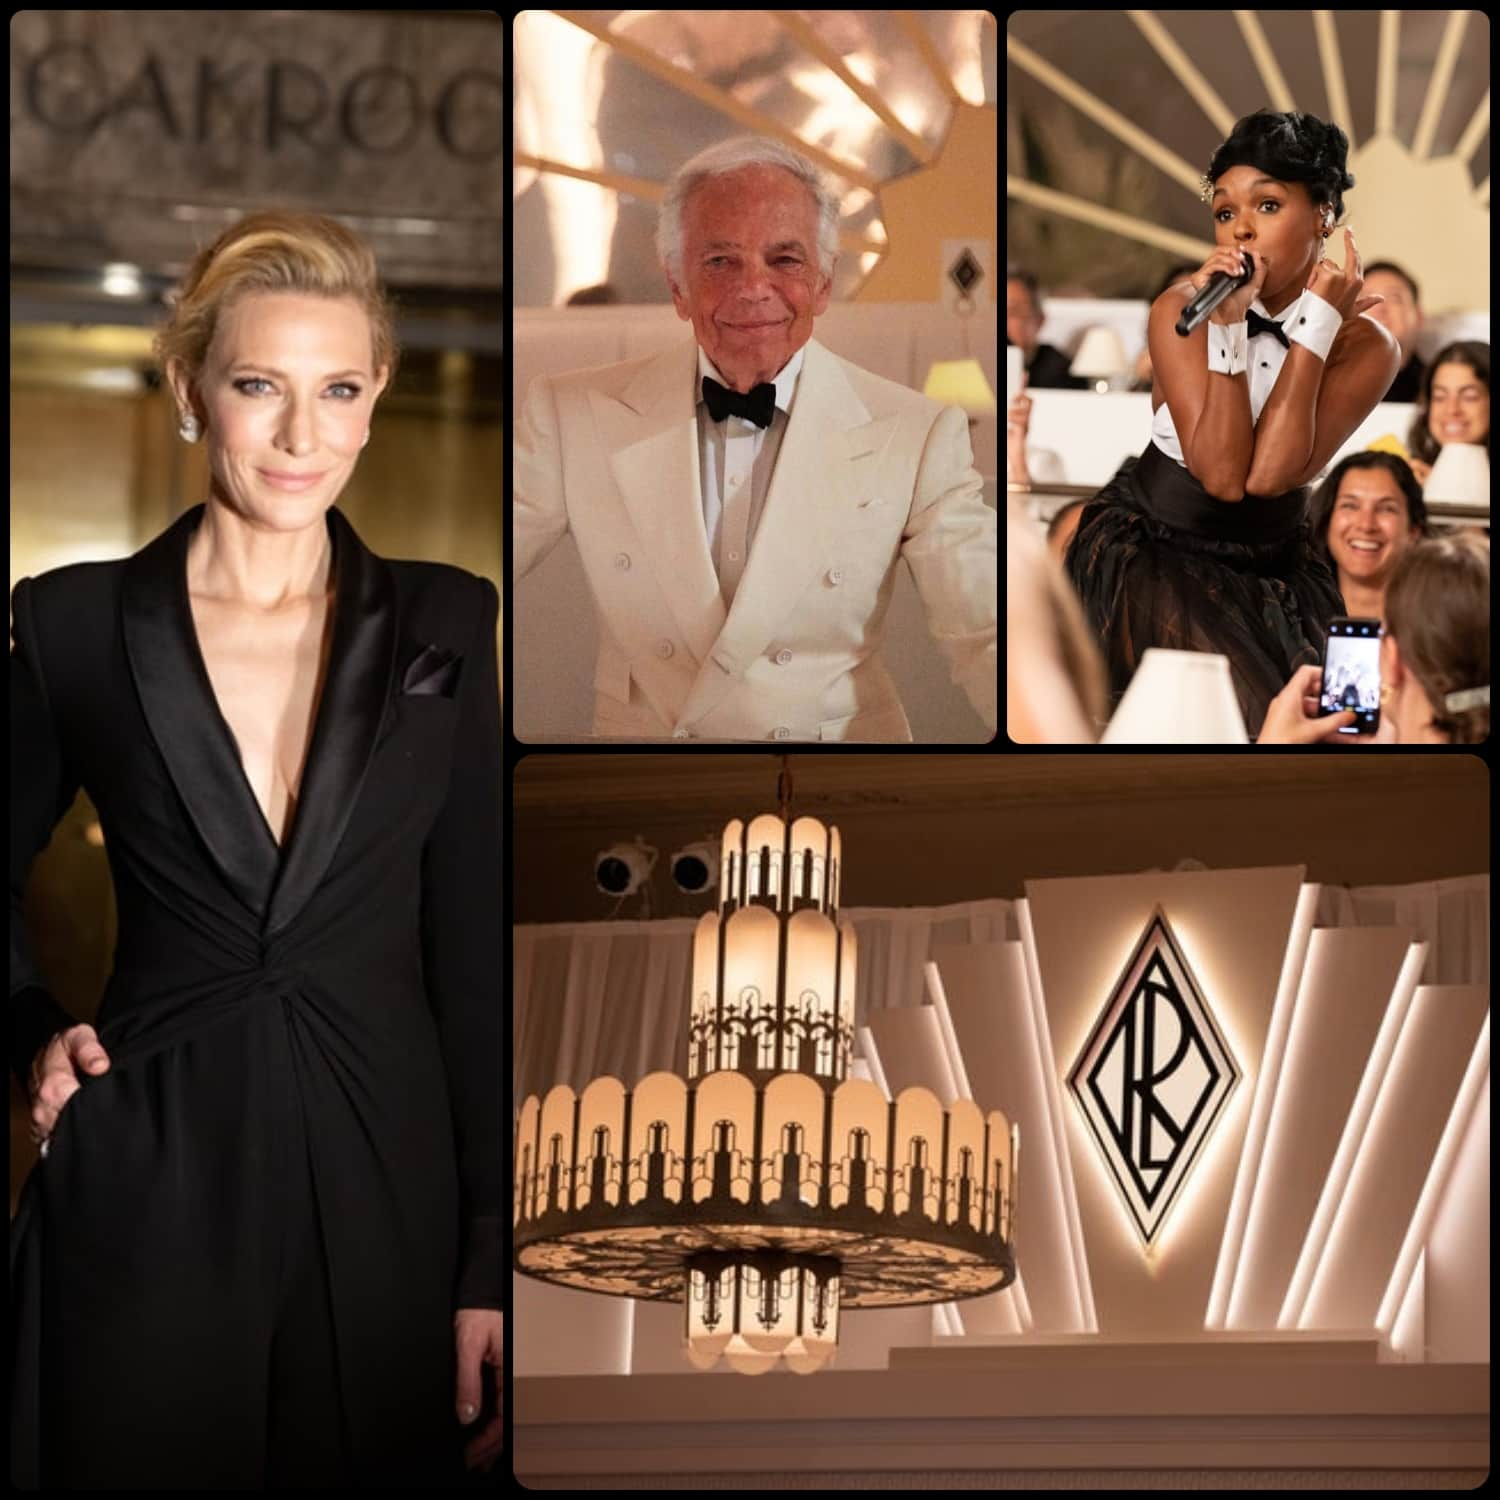 Ralph Lauren Fall 2019 New York - Cate Blanchett - performance Janelle Monae - RUNWAY MAGAZINE Collection